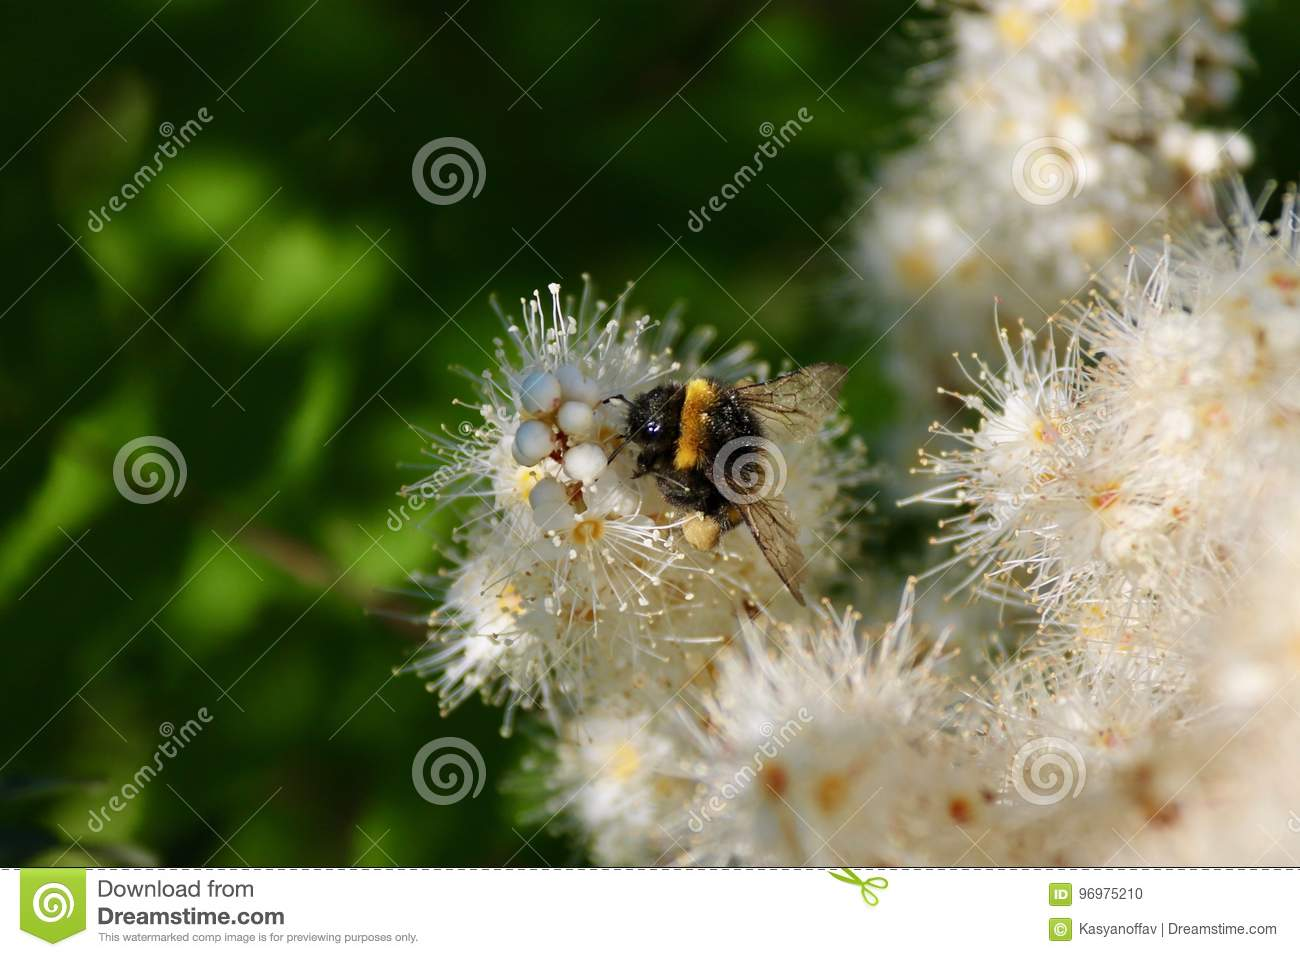 The bee sits on a white flower